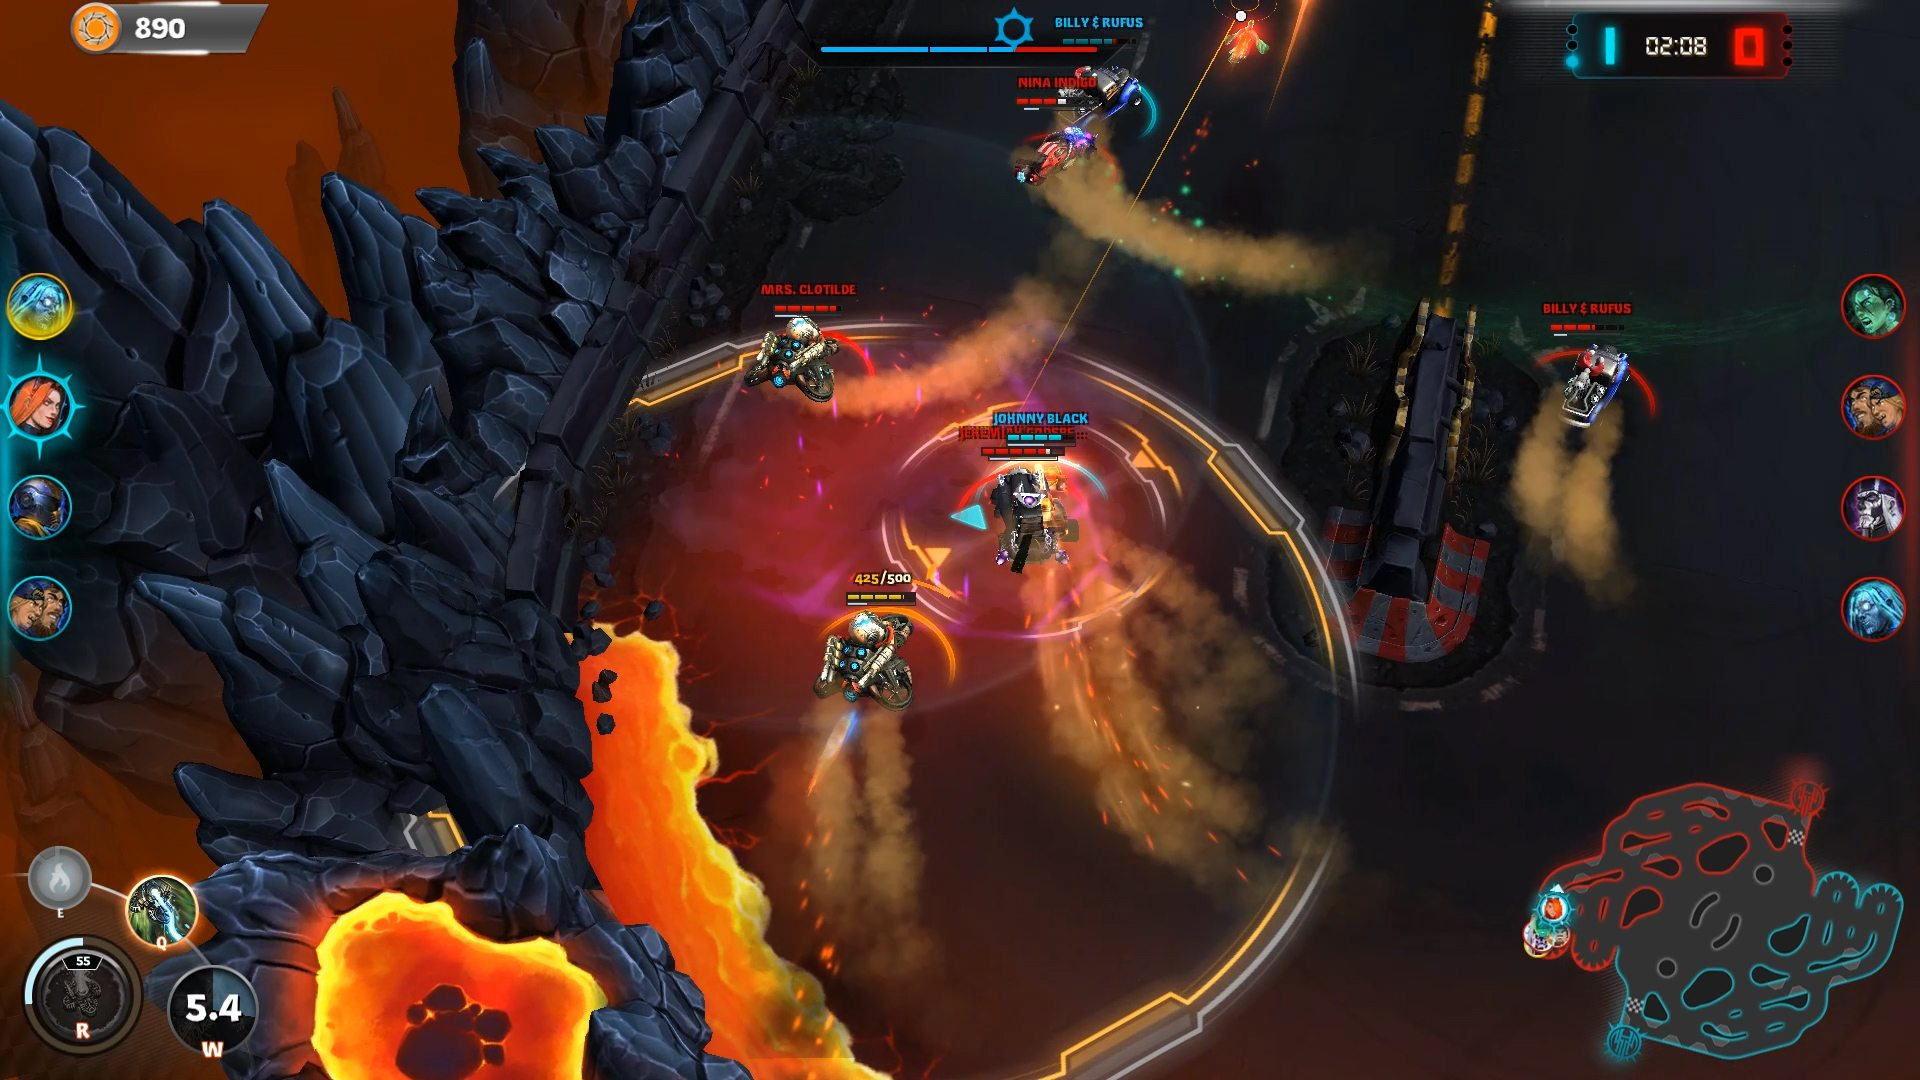 Heavy Metal Machines Developer Partners with Alienware to Deliver Exclusive Closed Beta Keys